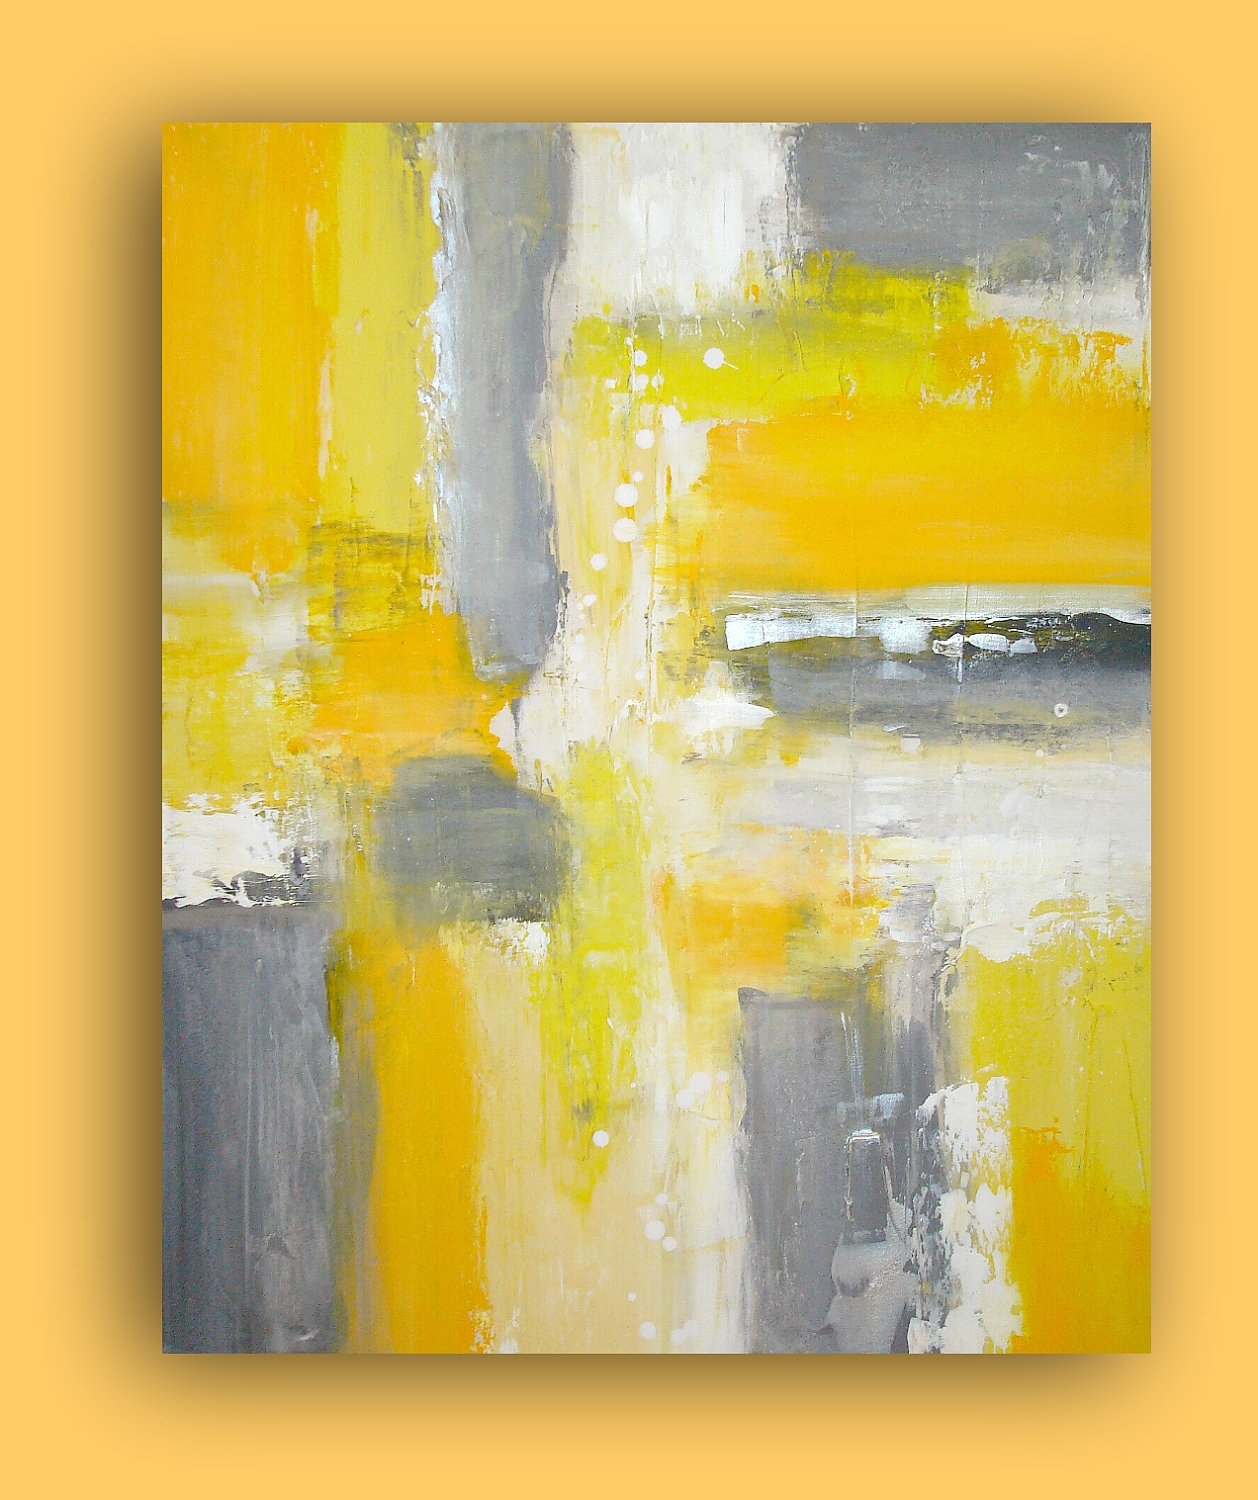 Art Original Yellow And Gray Acrylic Painting On Gallery Canvas Inside Current Yellow And Grey Abstract Wall Art (View 8 of 20)